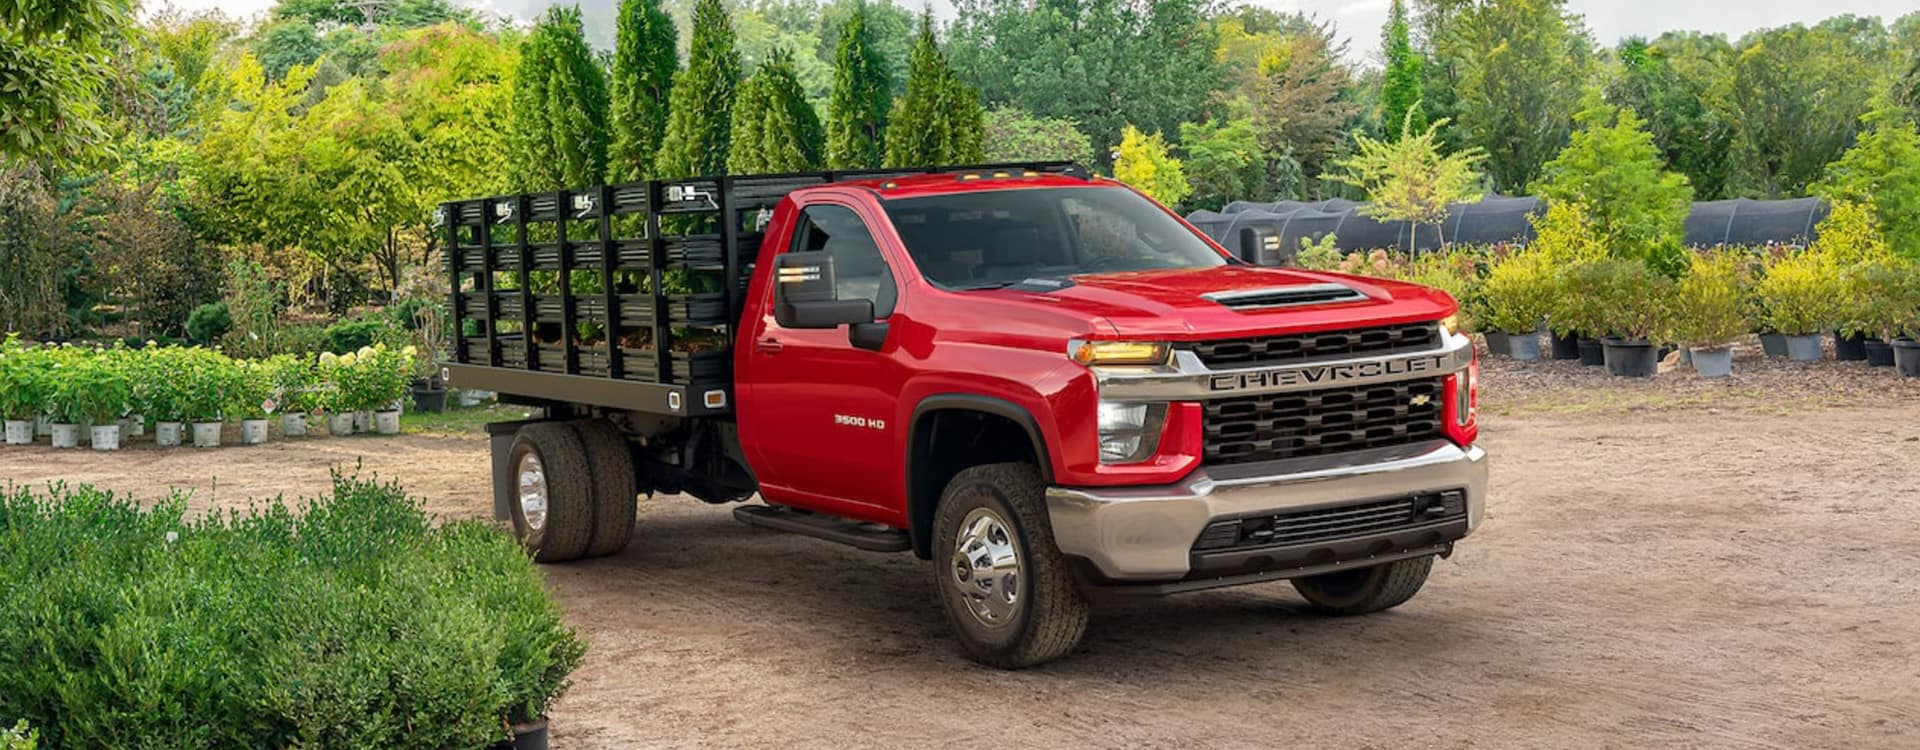 2021 Chevrolet Silverado 3500 Chassis Cab in St. Louis